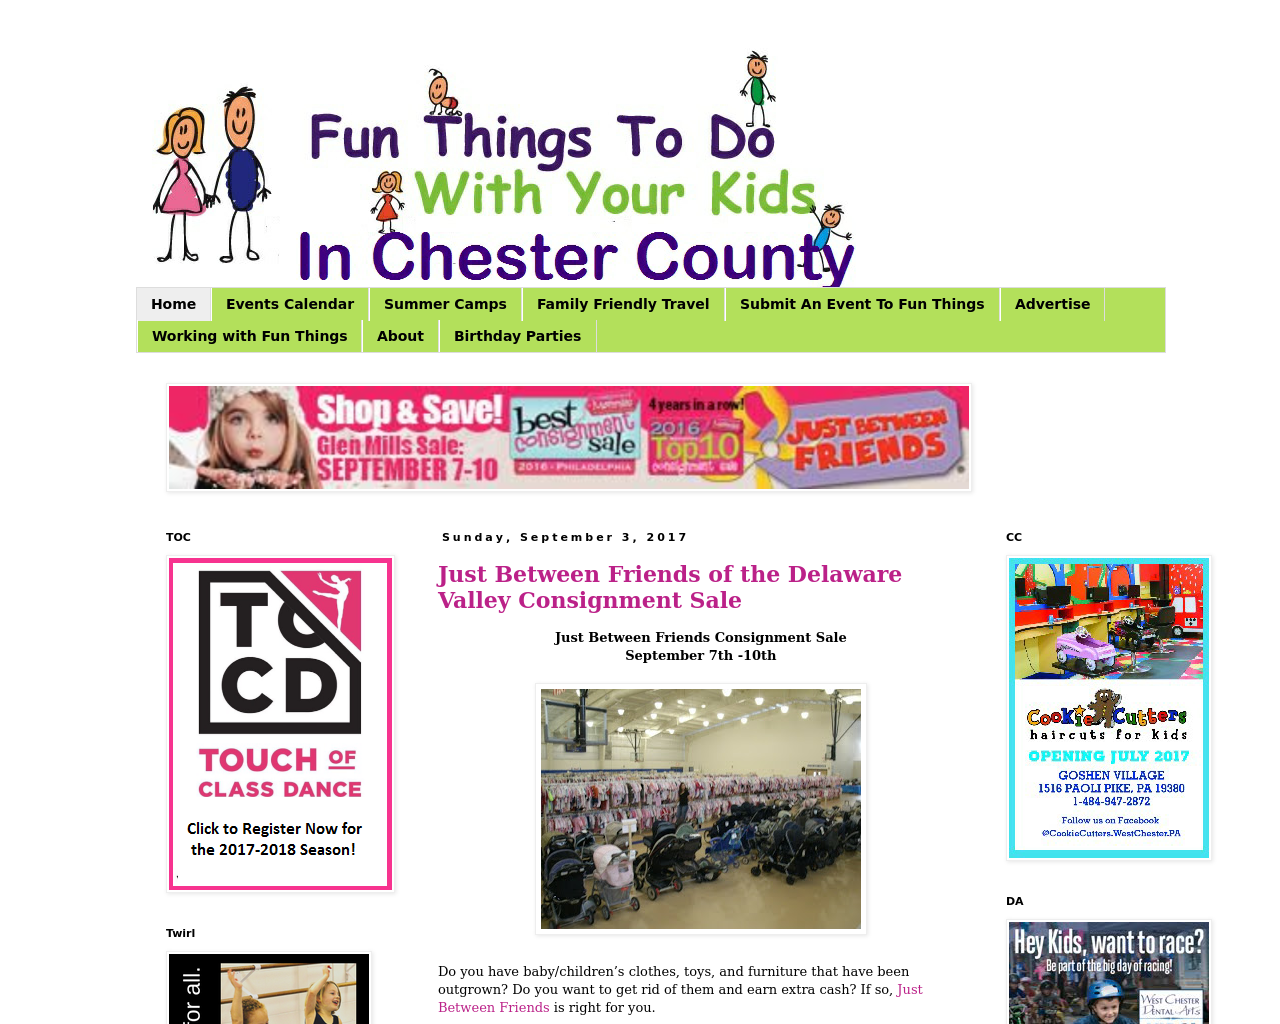 Fun-Things-To-Do-With-Kids-in-Chester-County-Advertising-Reviews-Pricing